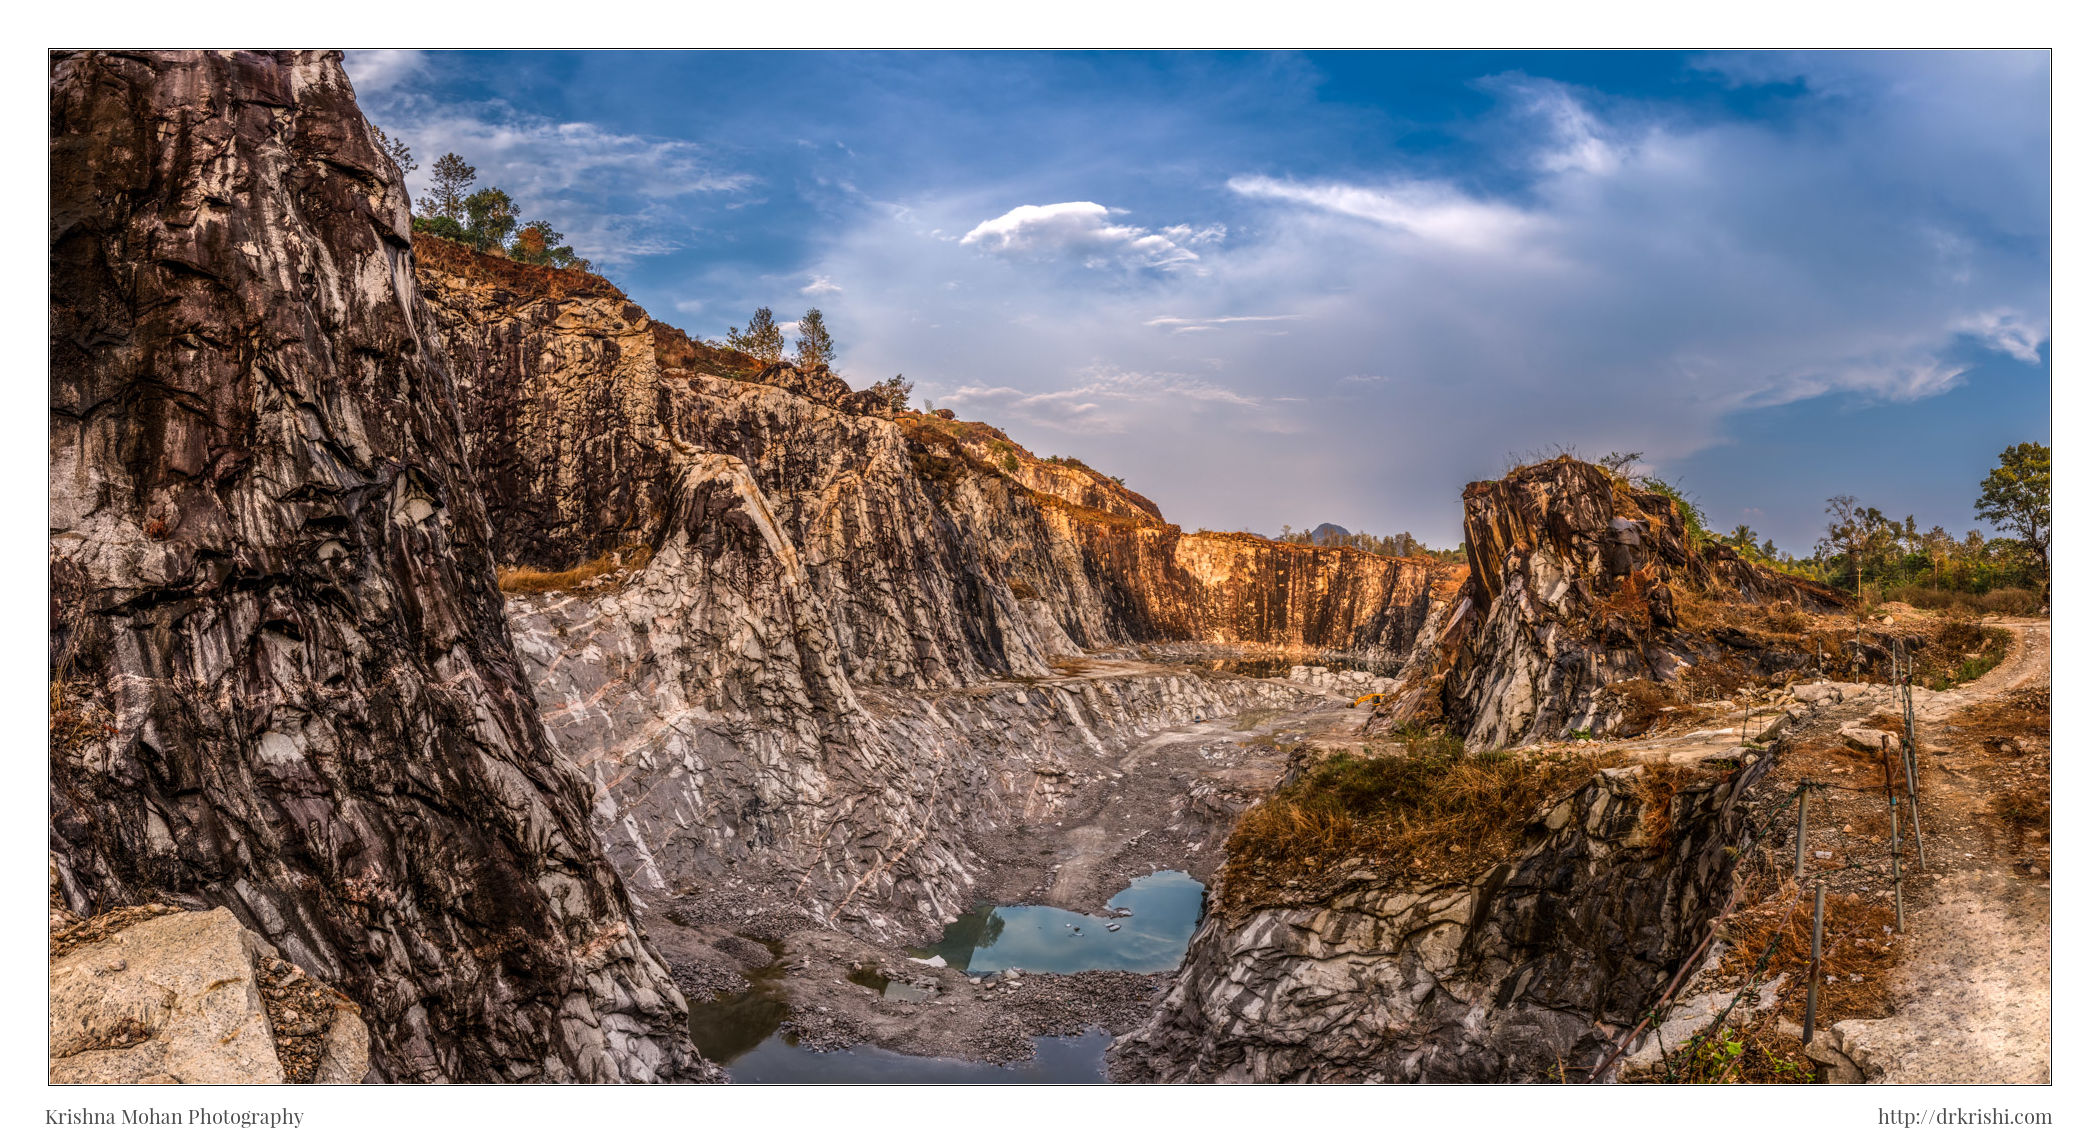 Stone Quarry at Phantom Rock